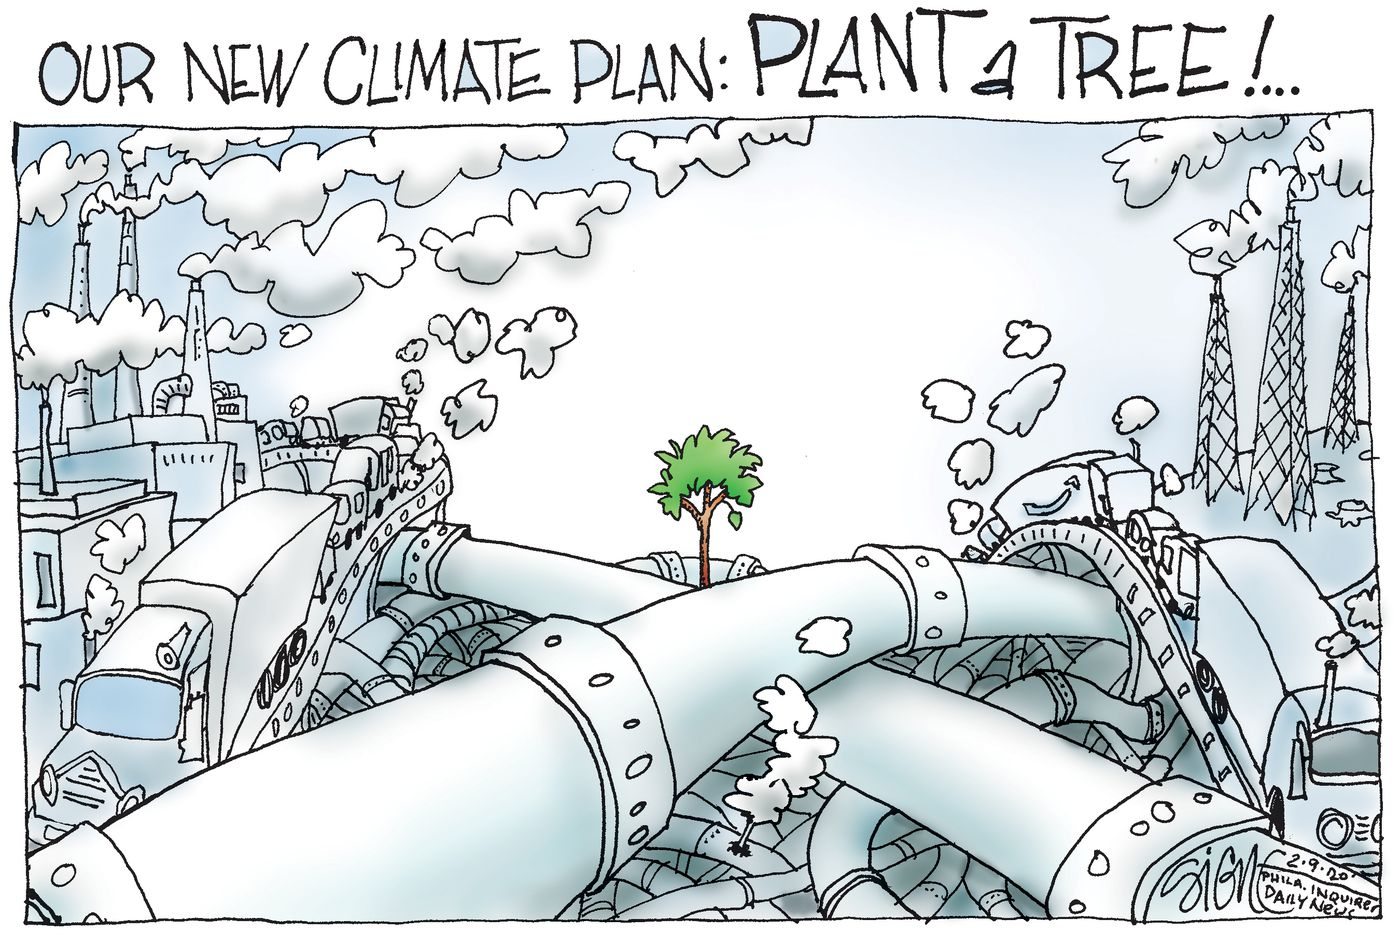 Political Cartoons: Trees to stop climate change?